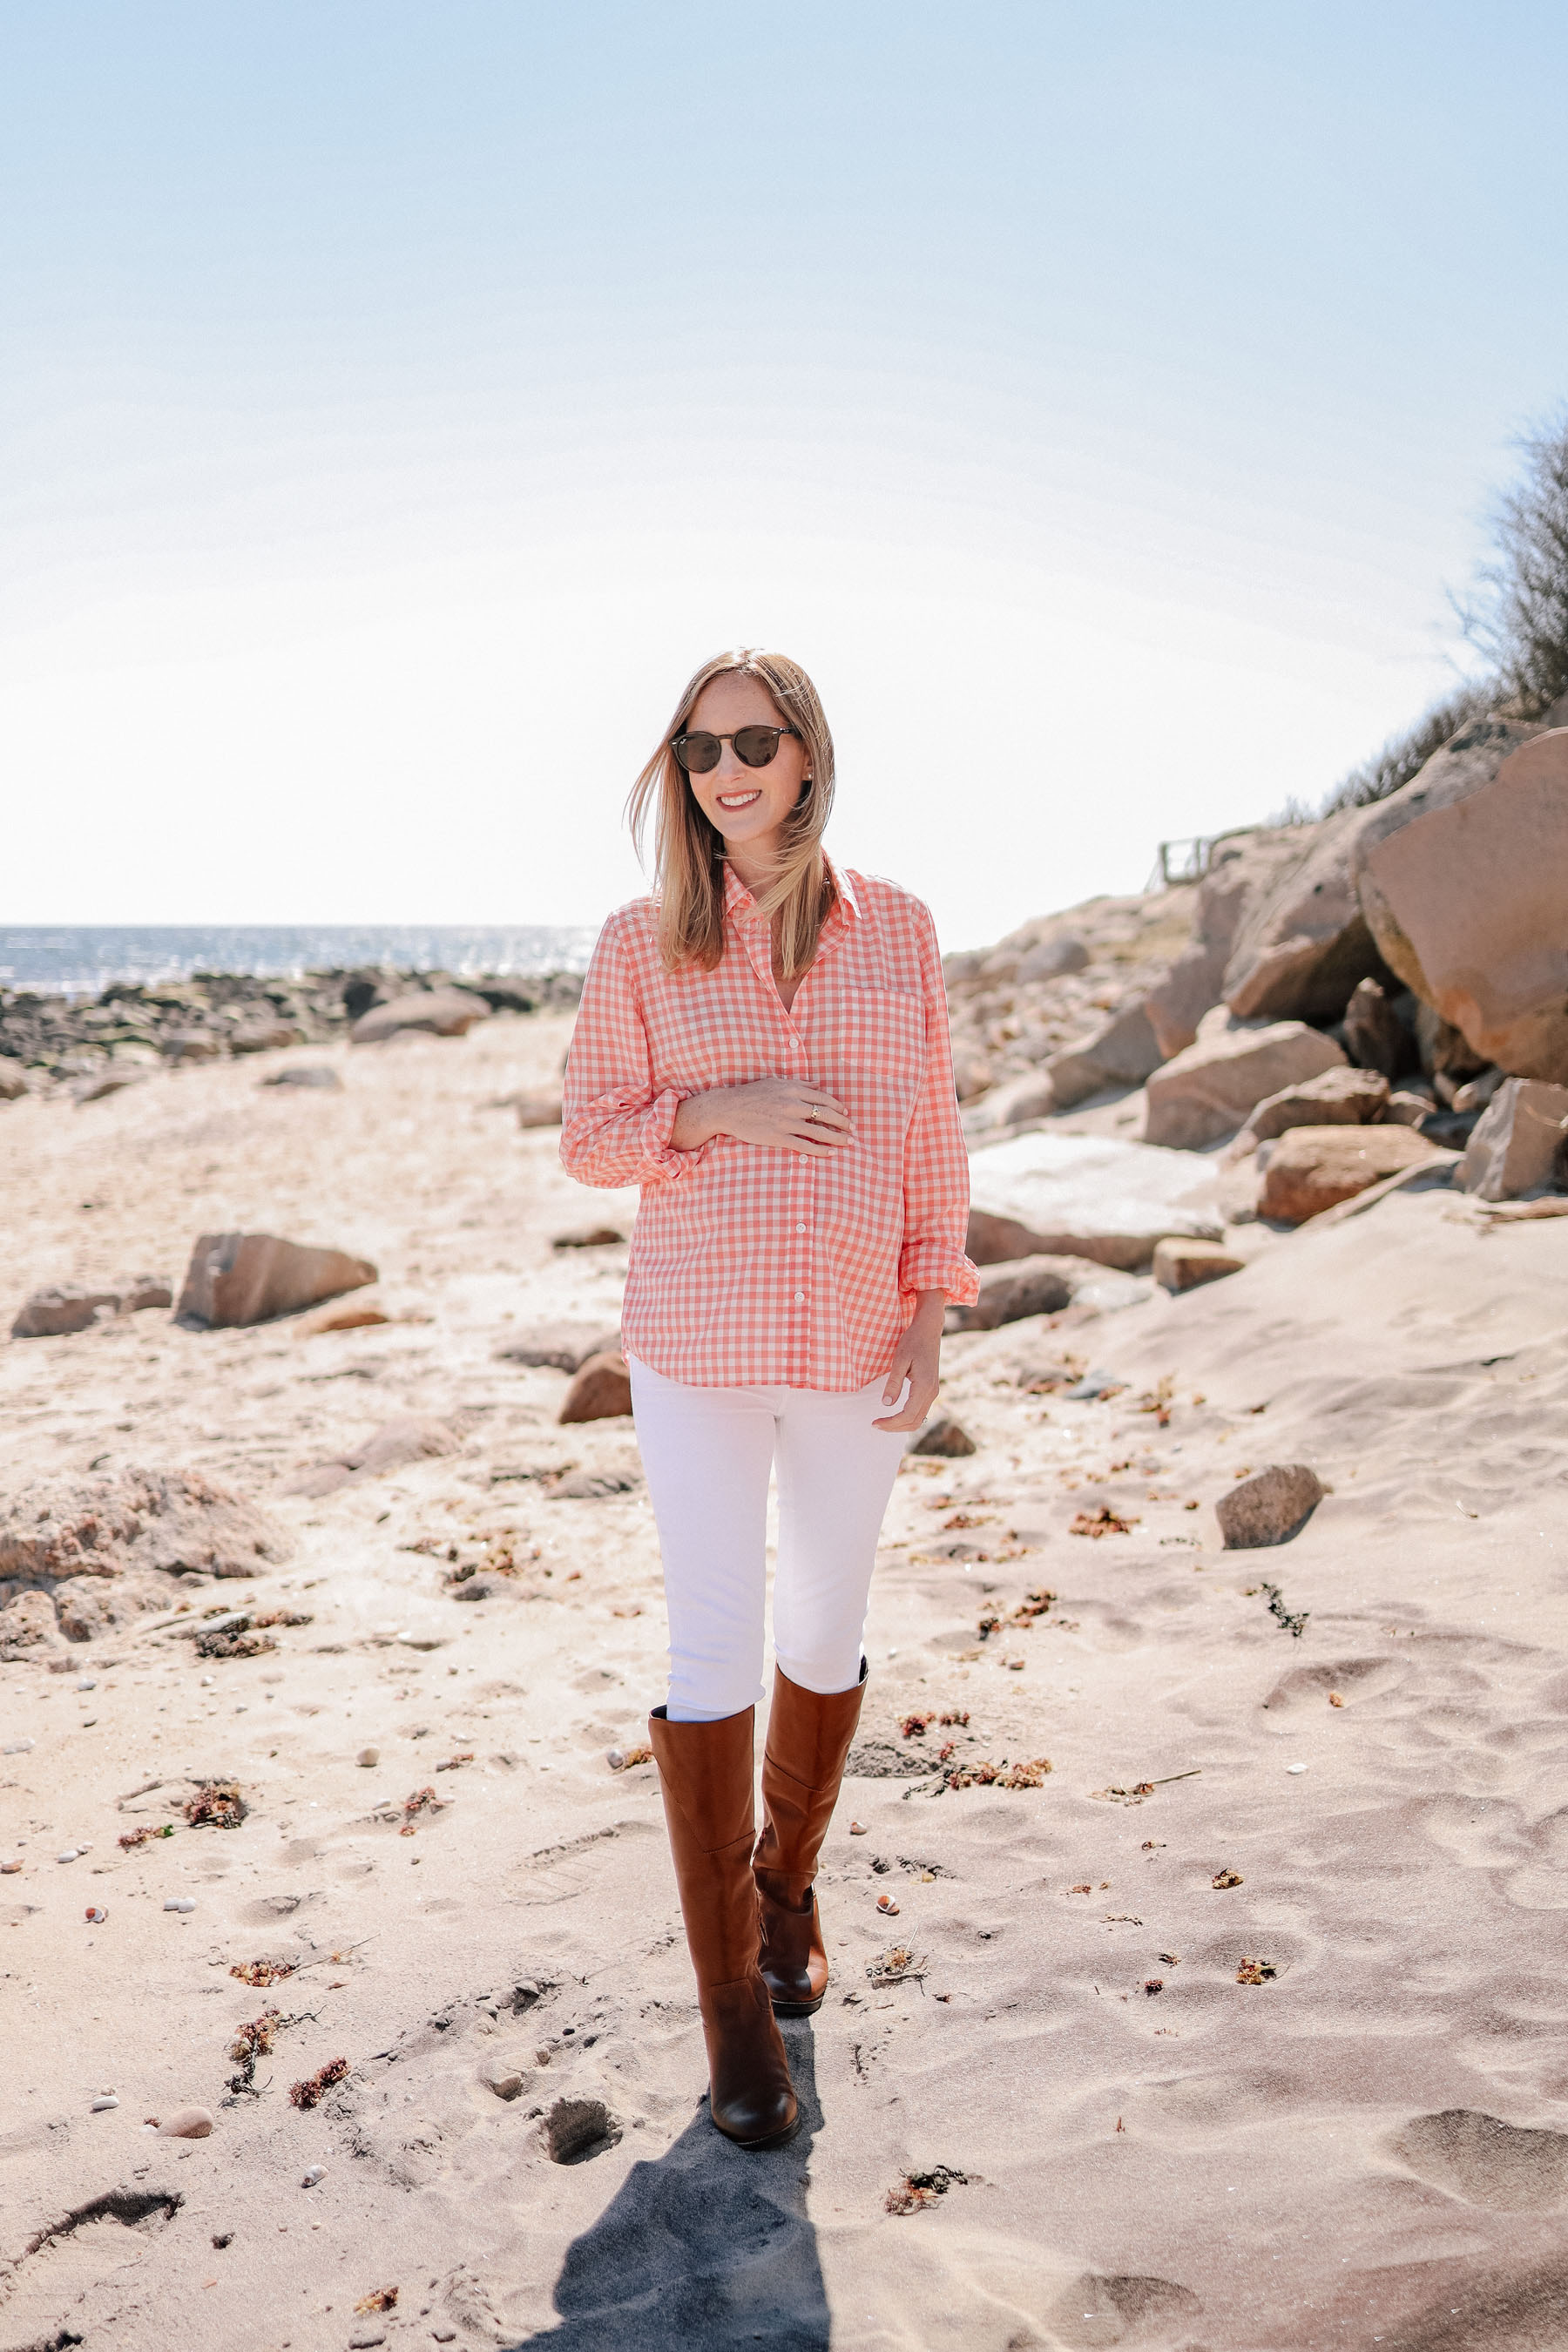 The Best J.Crew Factory Finds for Spring